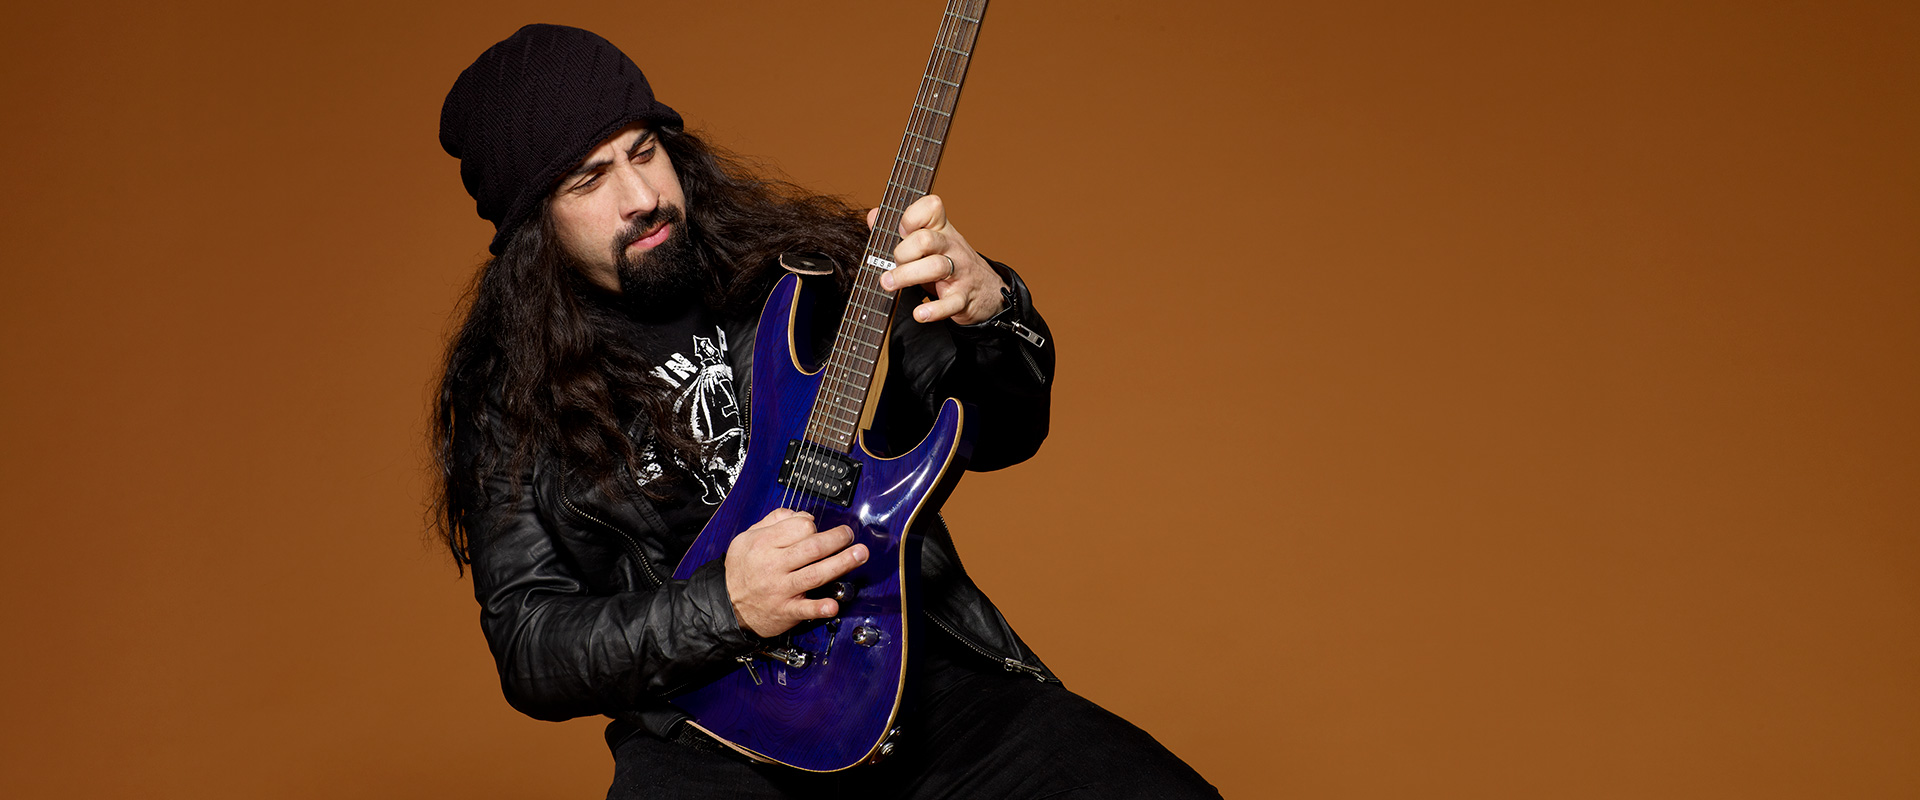 Rob Caggiano for DiMarzio